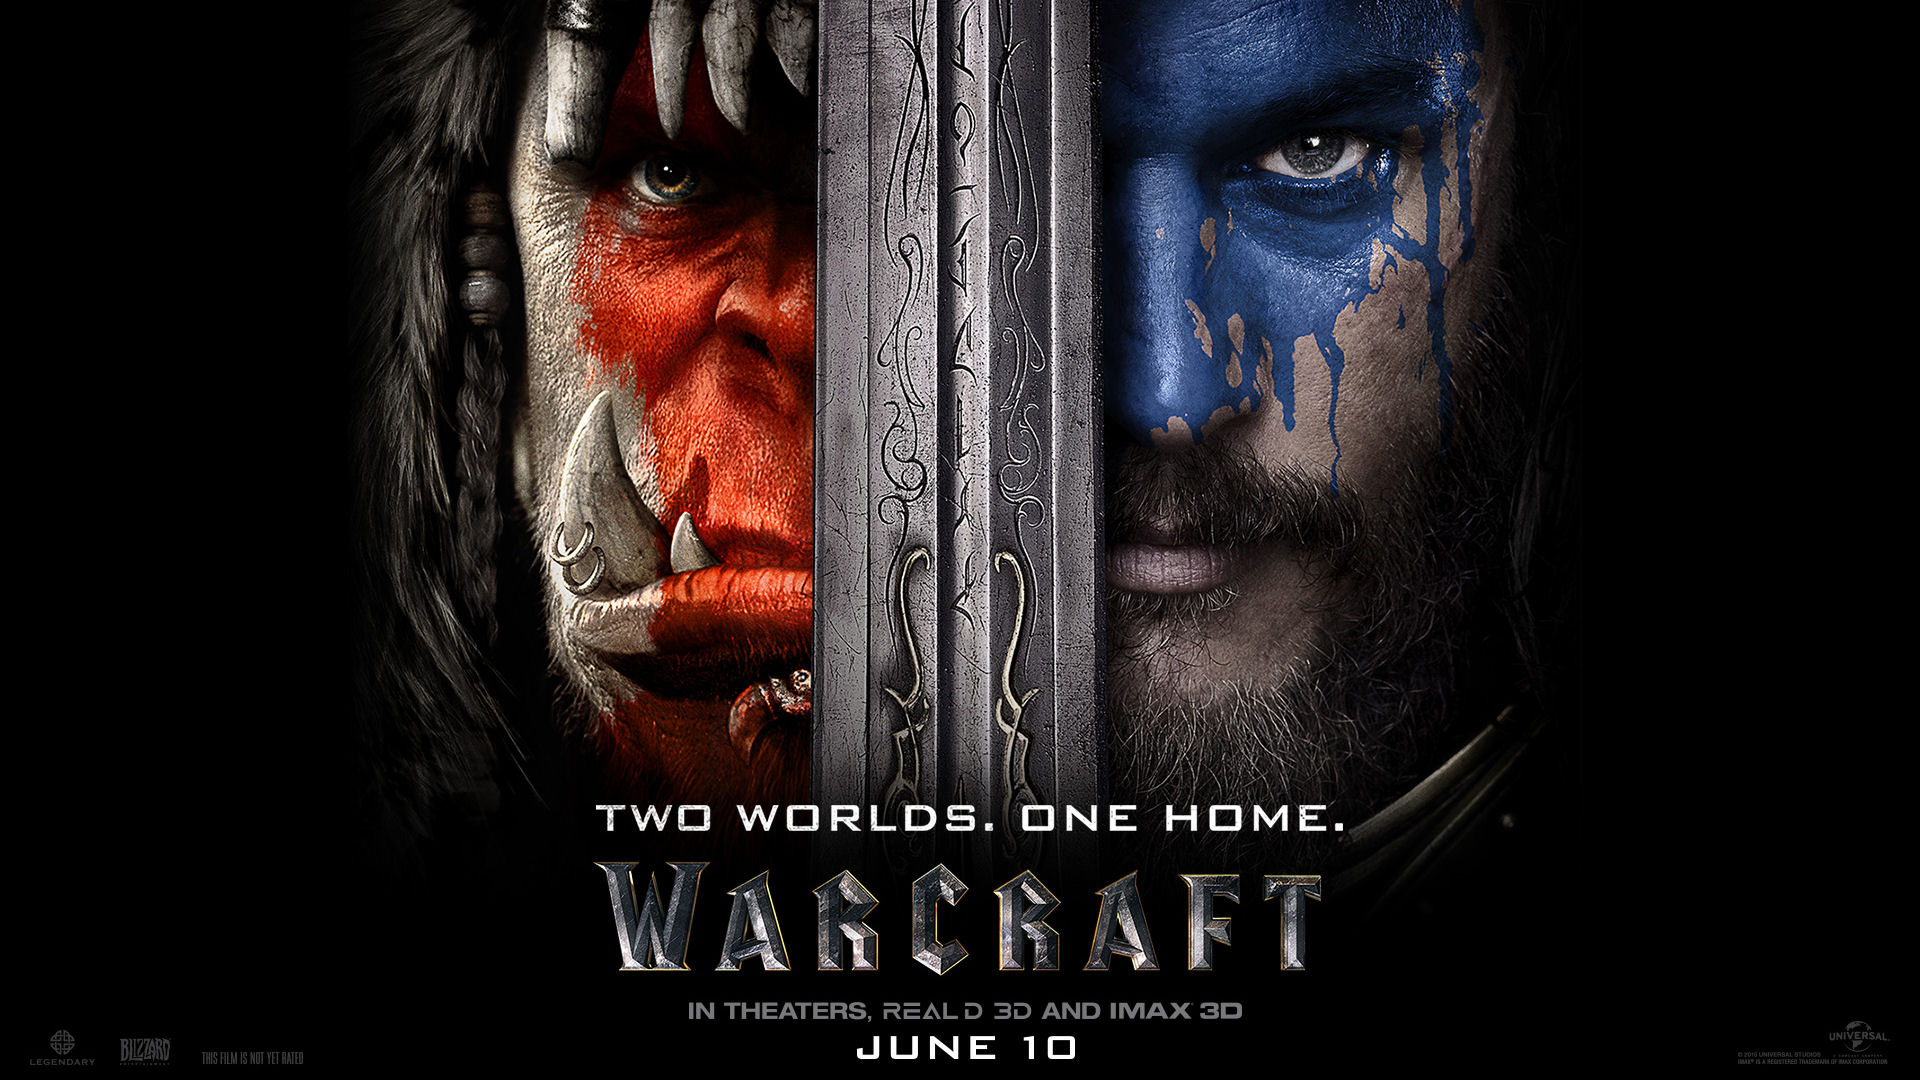 Legendary airs the first Warcraft movie tv spot during large audience viewing plus set photo teasers!